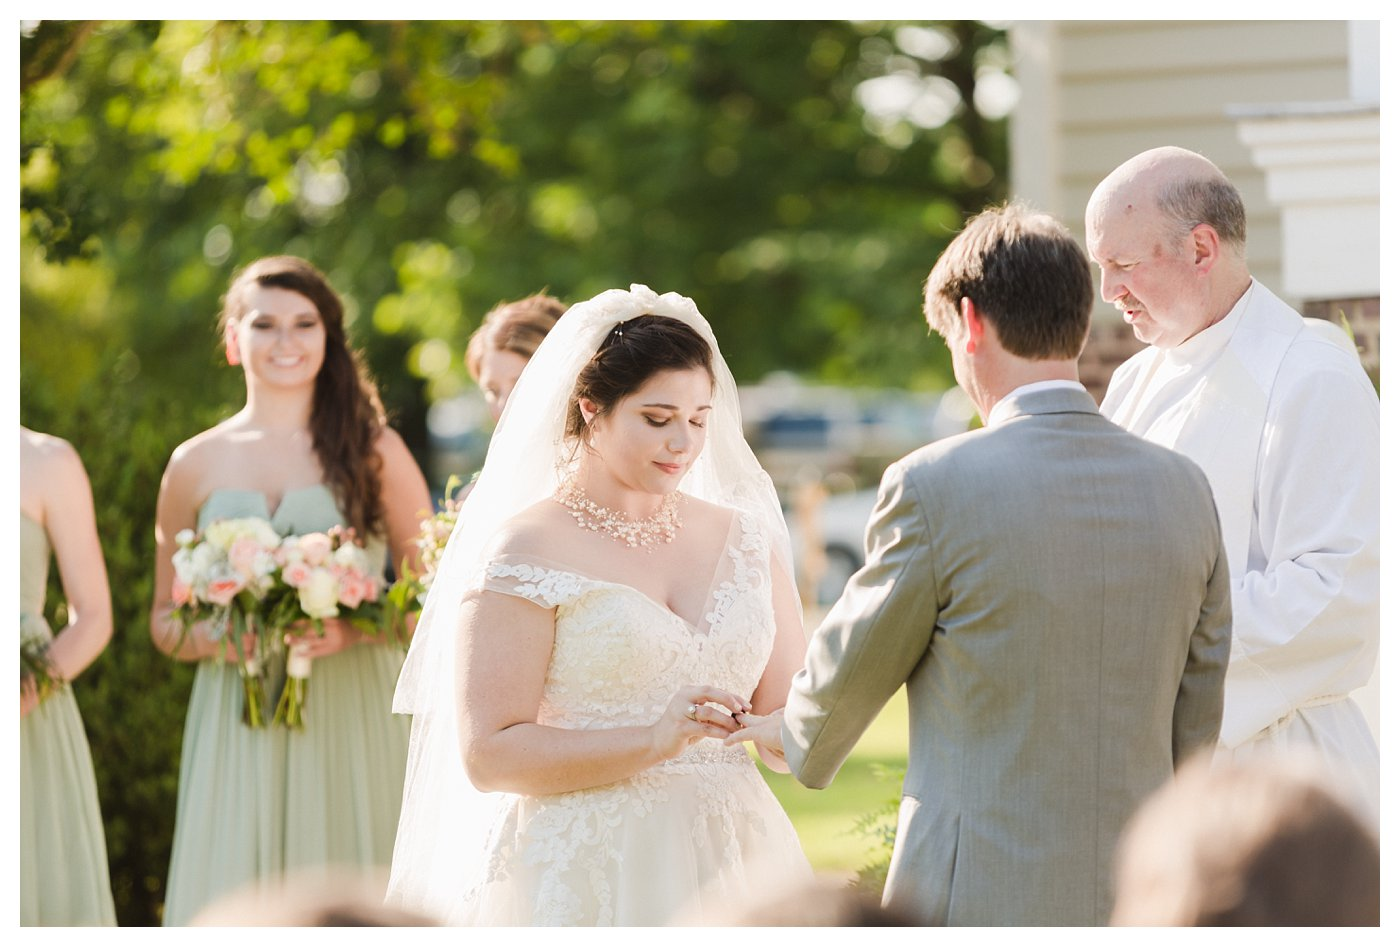 Historic_Hope_Plantation_Wedding_Photography_Sage_Summer_Outdoor_Windsor_NC_0029.jpg